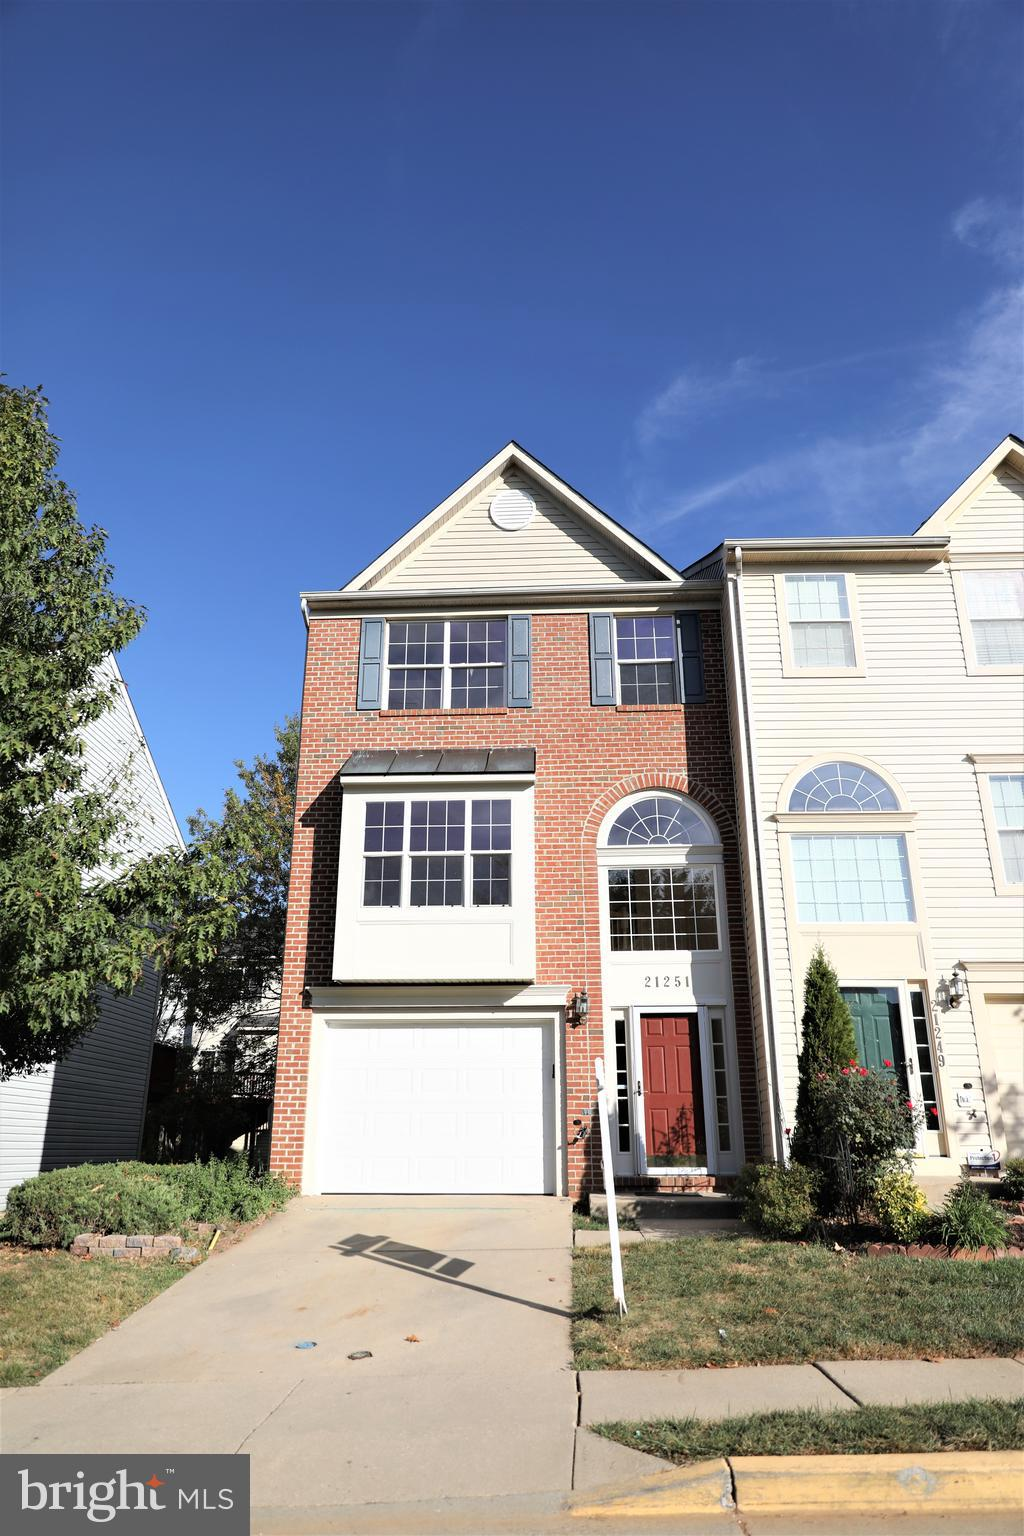 21251 OWLS NEST CIRCLE 39, GERMANTOWN, MD 20876